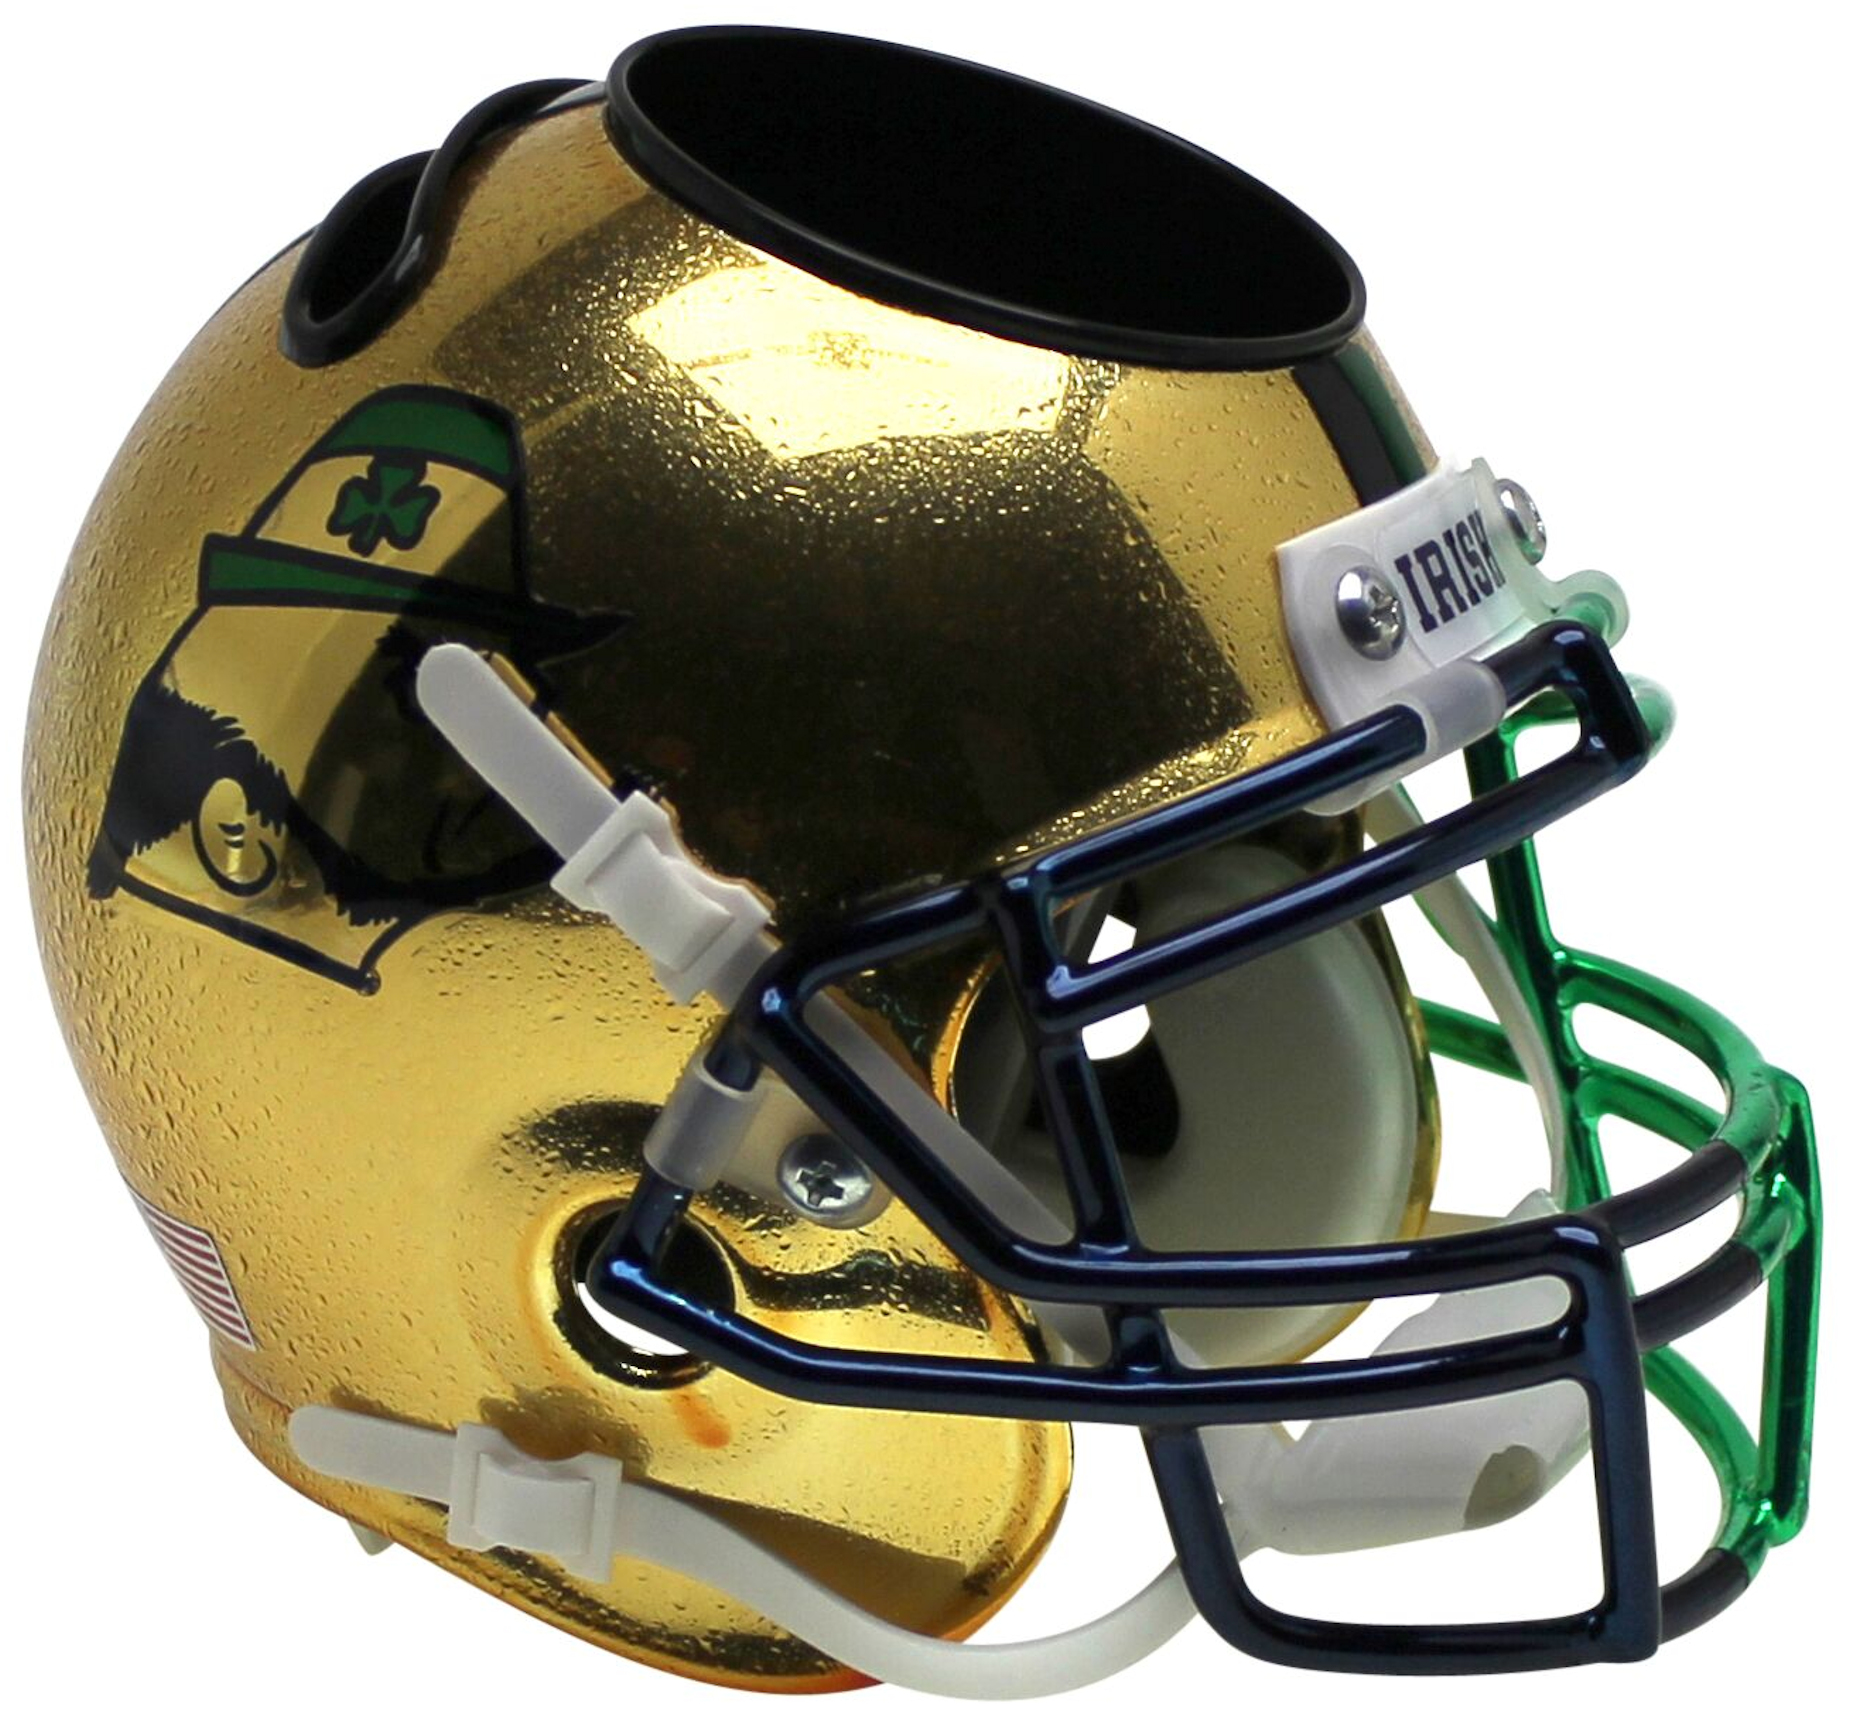 Notre Dame Fighting Irish Miniature Football Helmet Desk Caddy <B>Textured with Shamrock 2015 Boston</B>